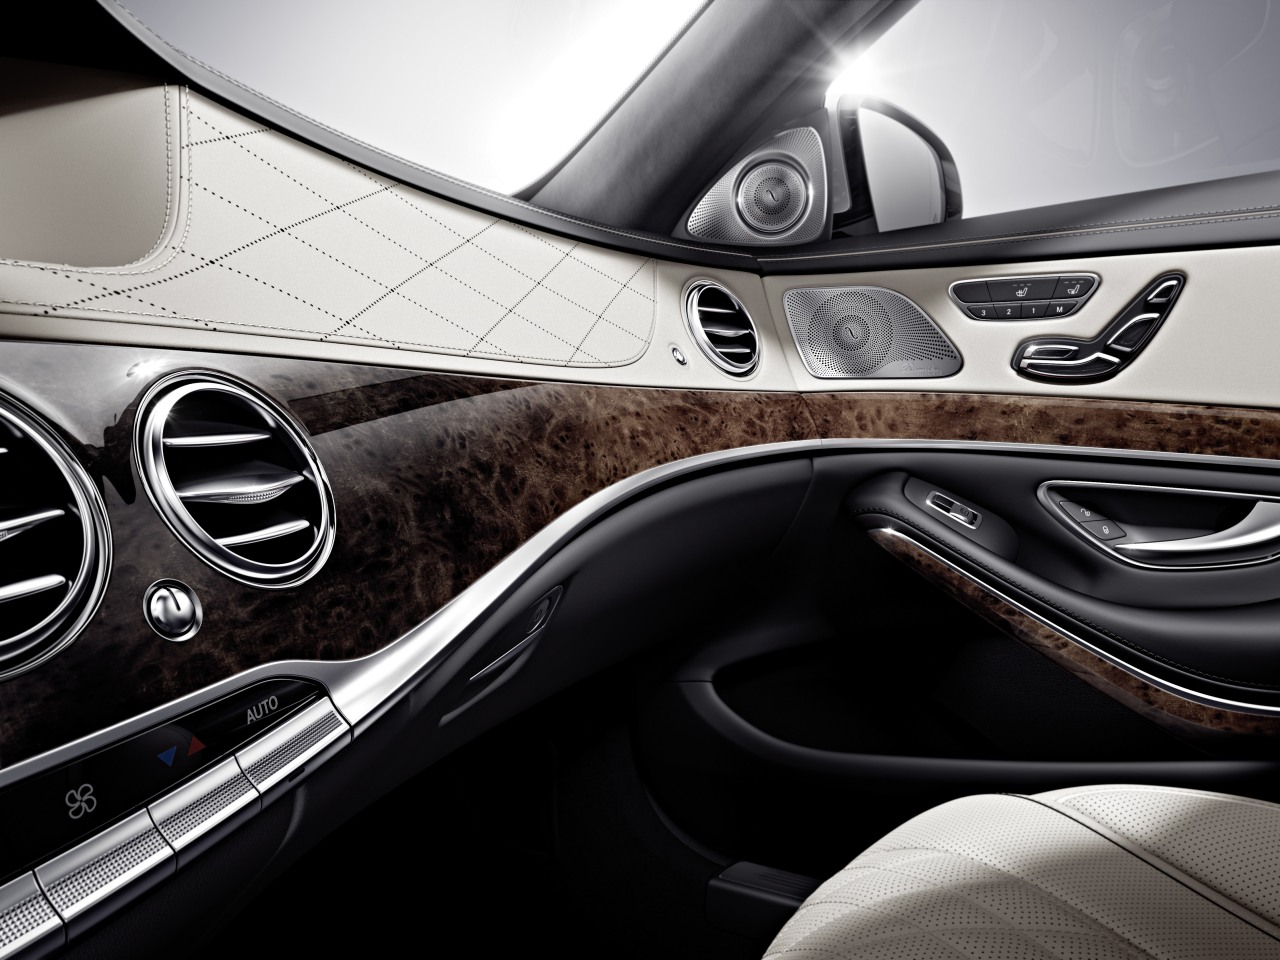 2014 mercedes benz s class interior design photo gallery for Mercedes benz interiors